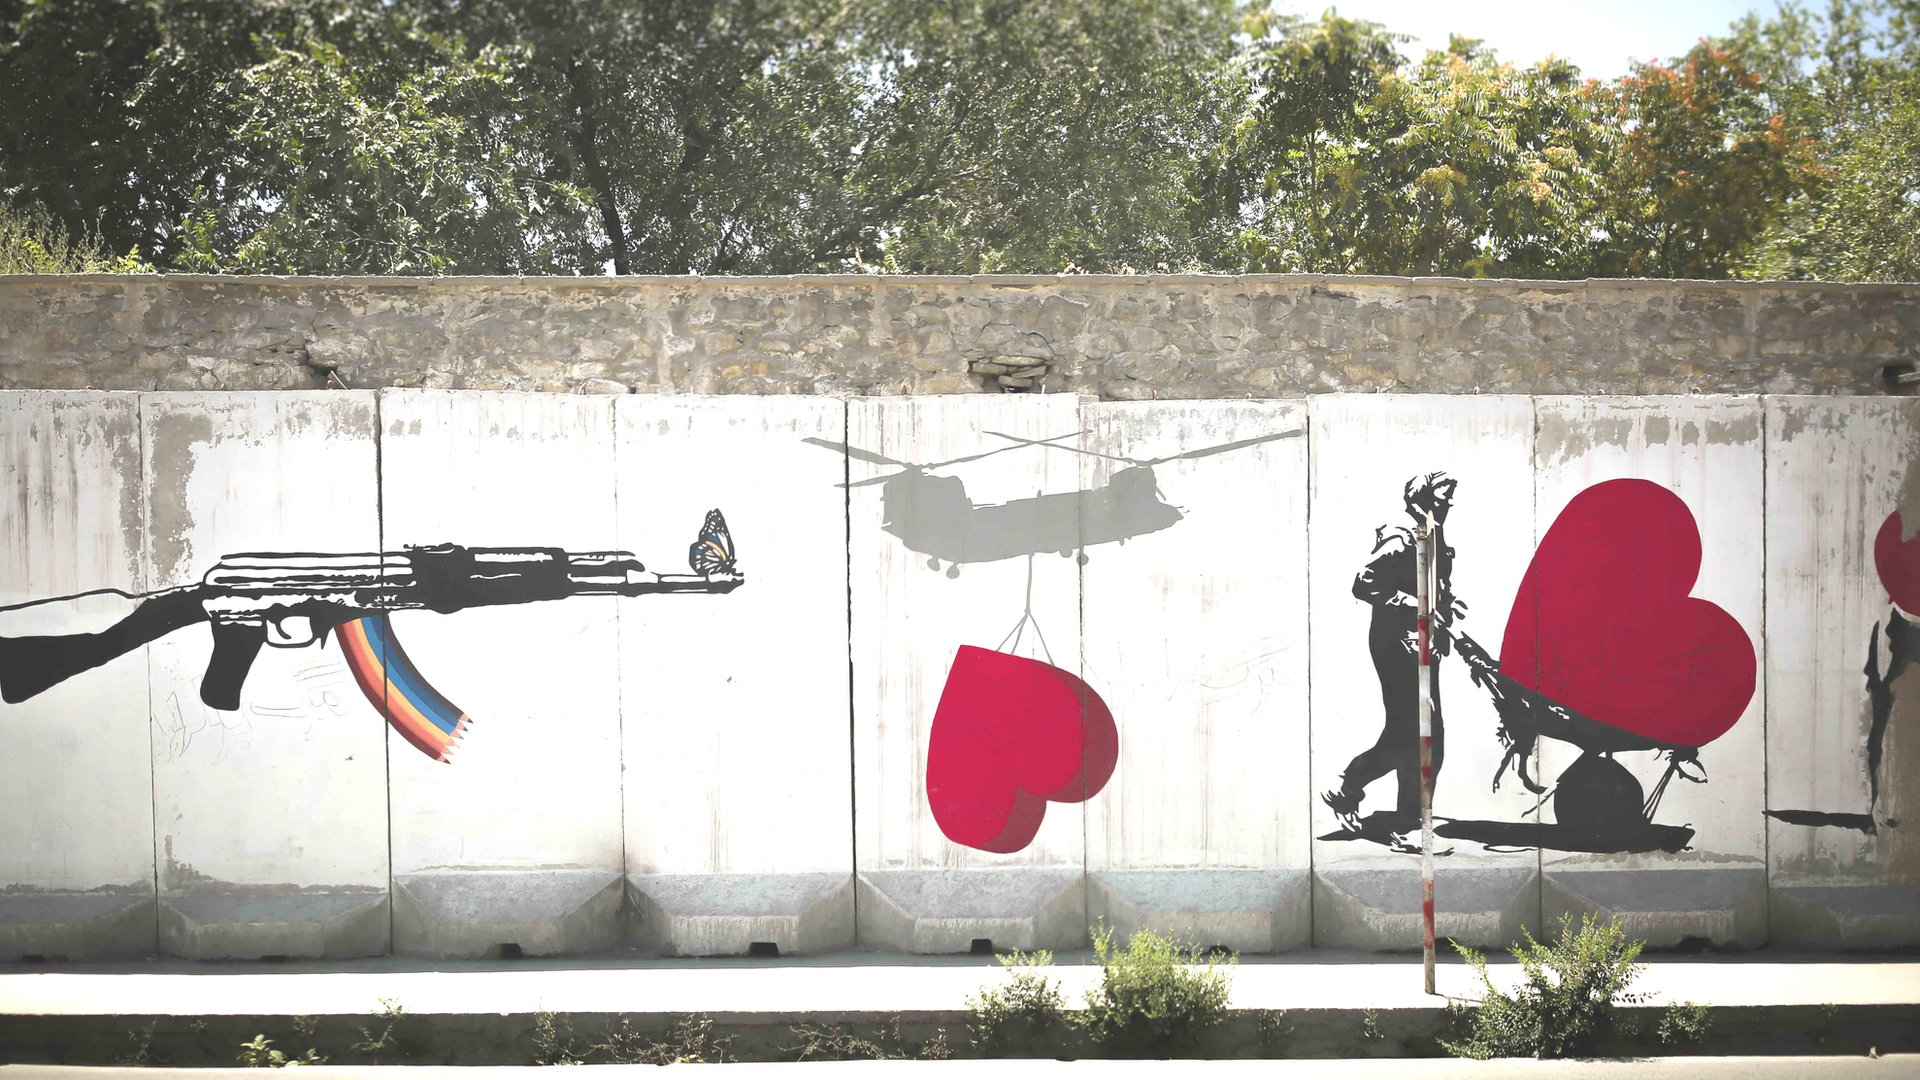 Graffiti of guns and hearts in Afghanistan